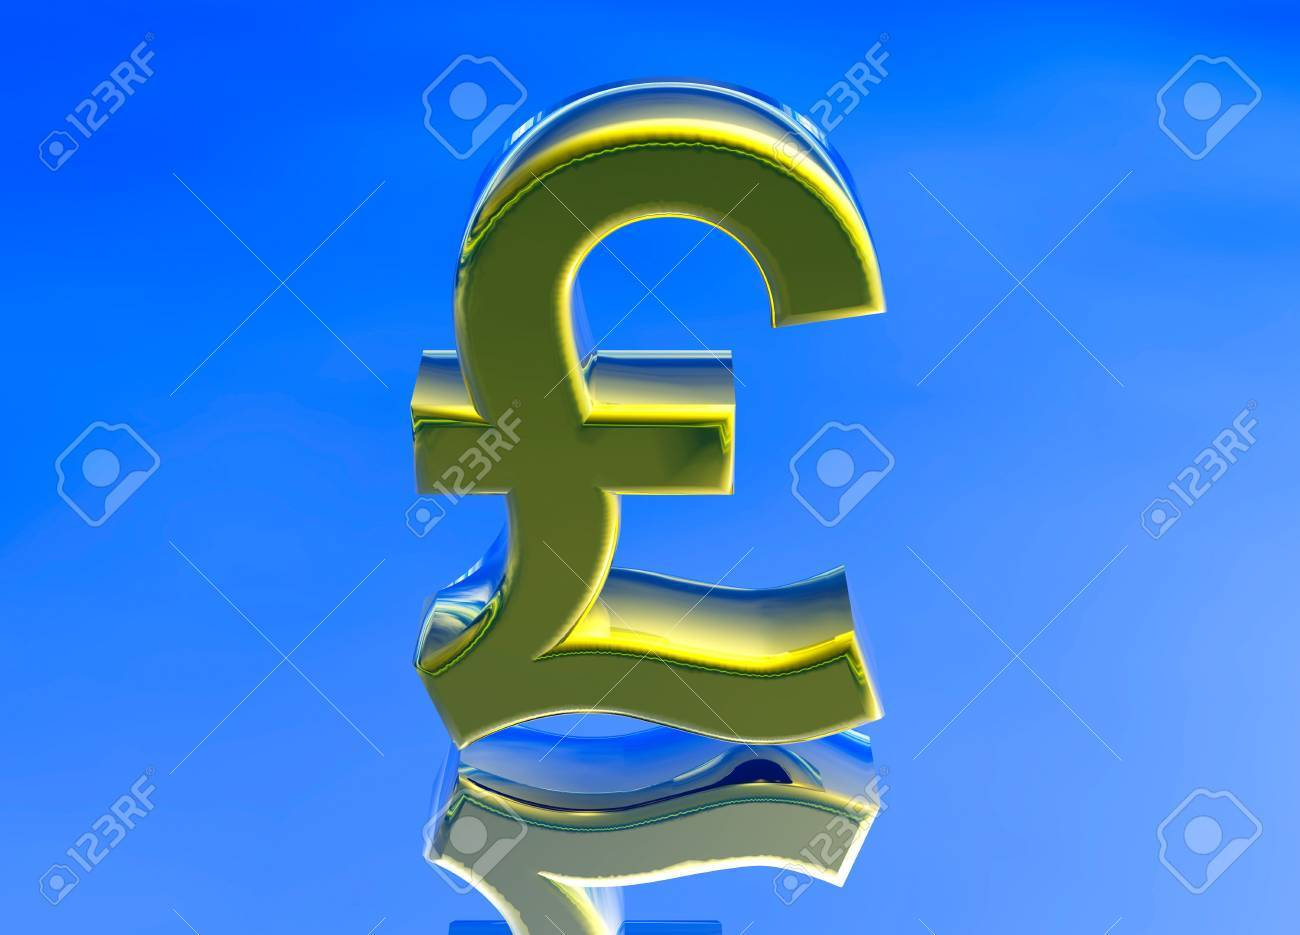 Gold Uk Gbp Pound Sterling Currency Symbol On Blue Background Stock